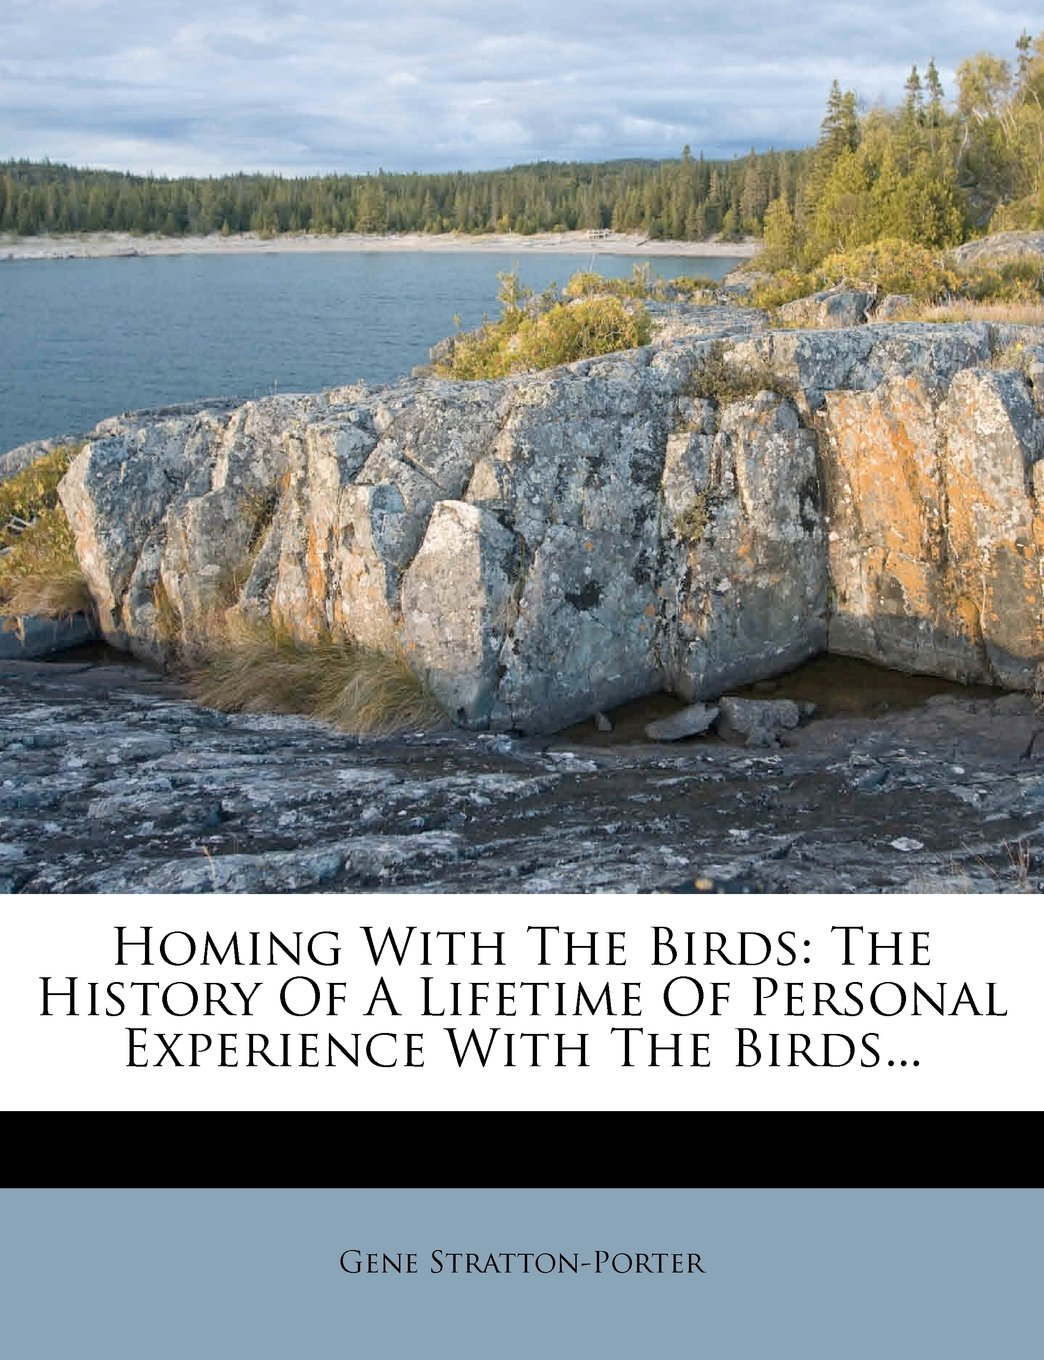 Download Homing With The Birds: The History Of A Lifetime Of Personal Experience With The Birds... ebook